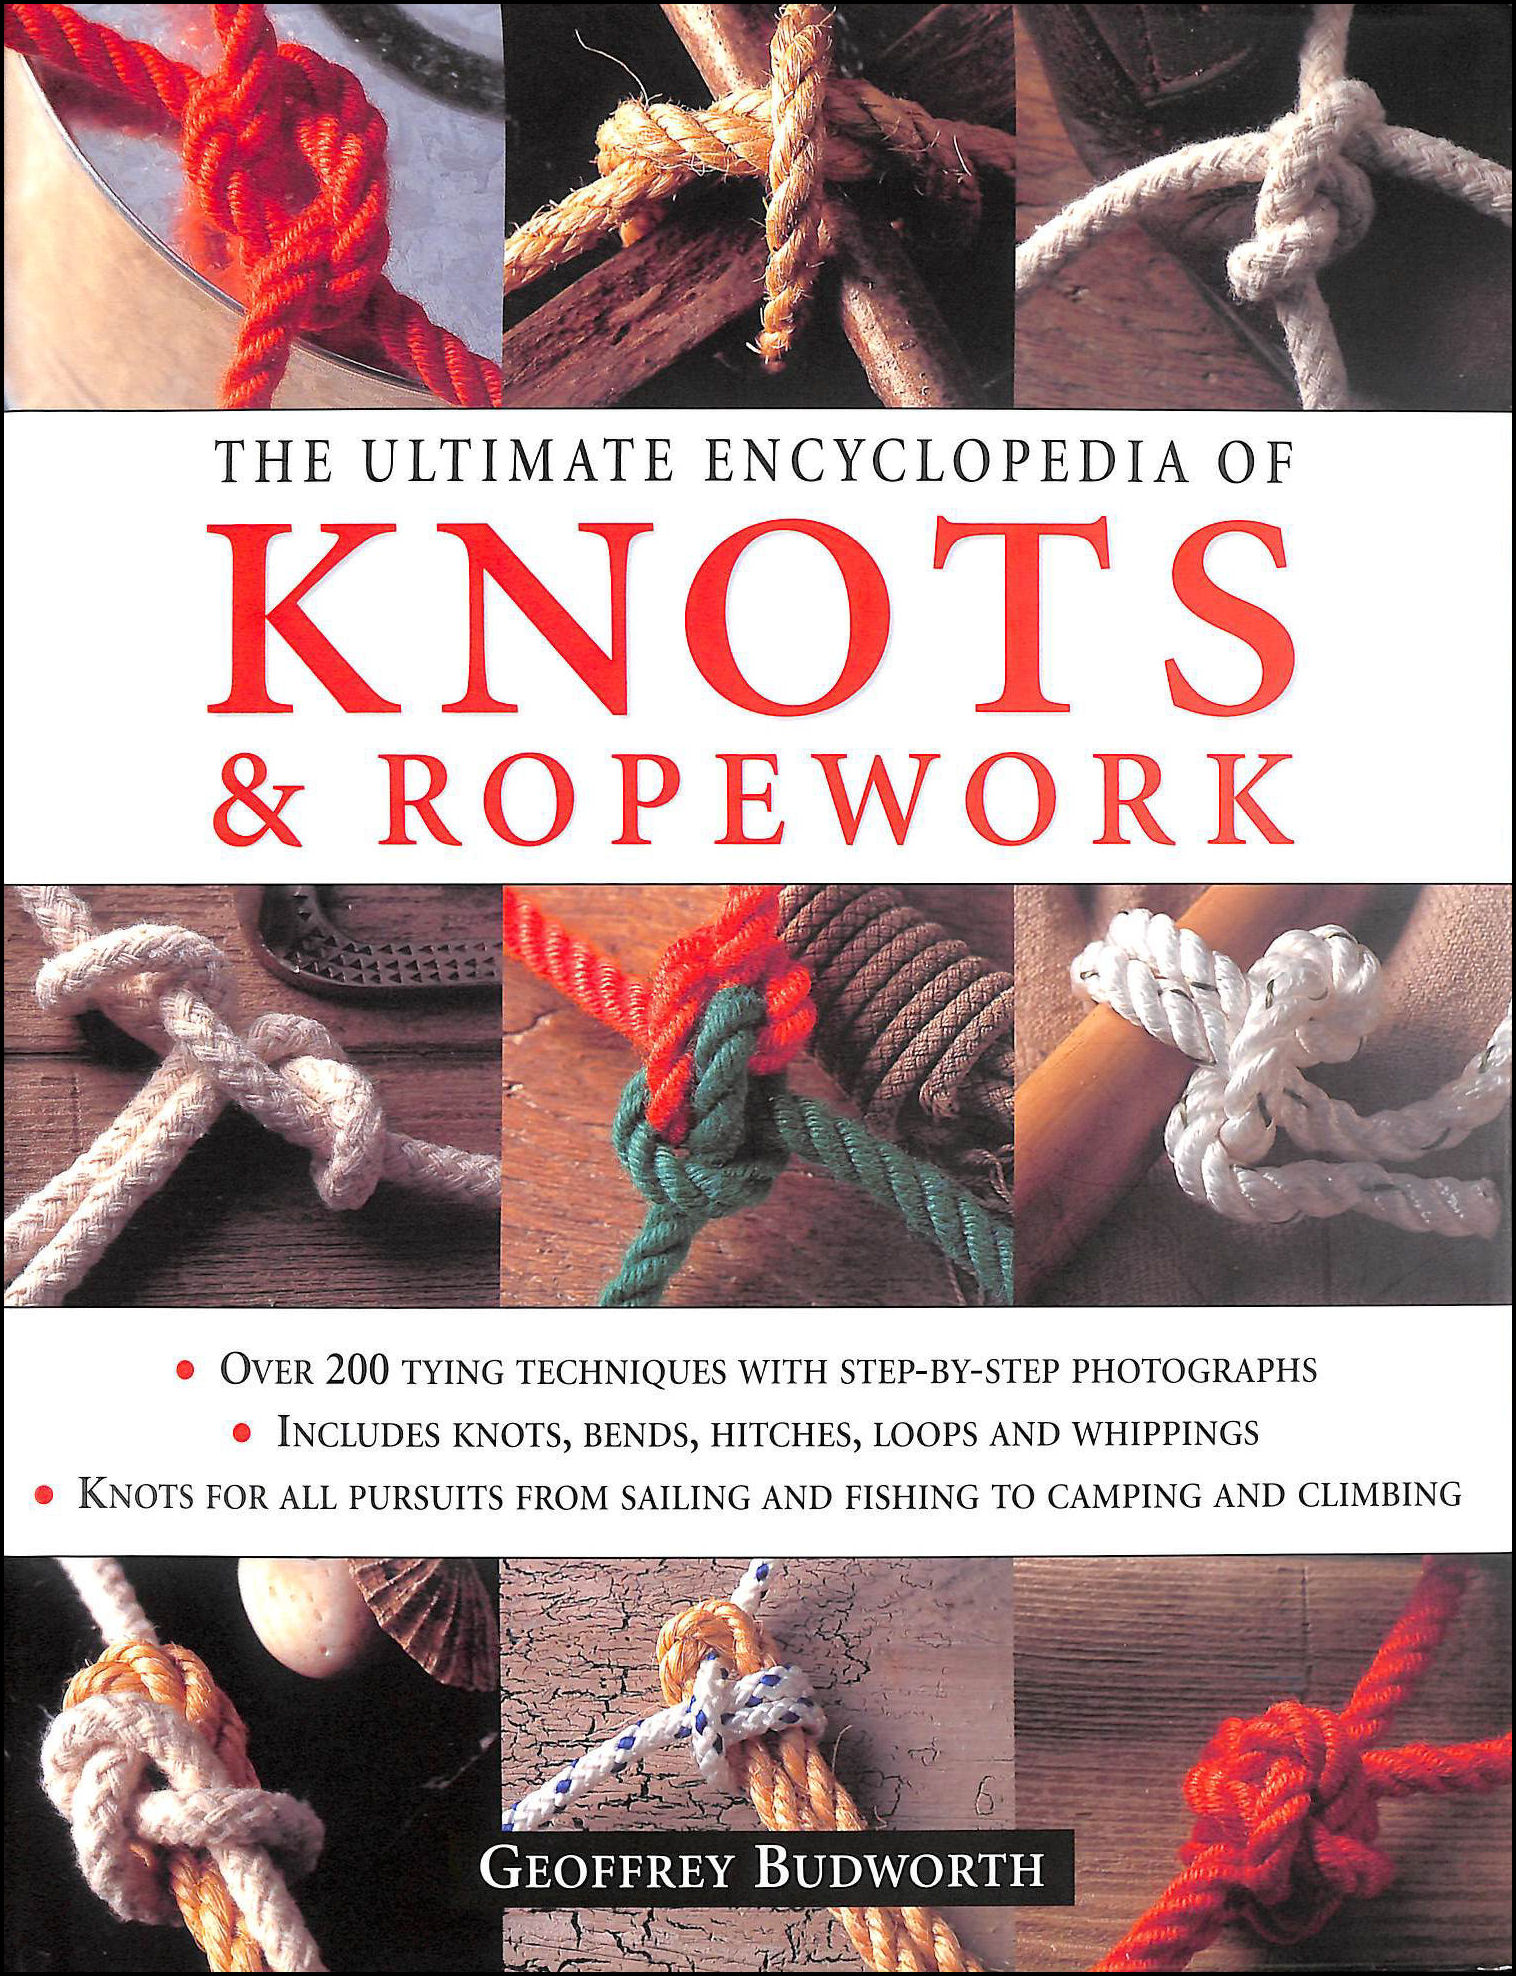 Ultimate Encyclopedia of Knots and Ropework, Geoffrey Budworth